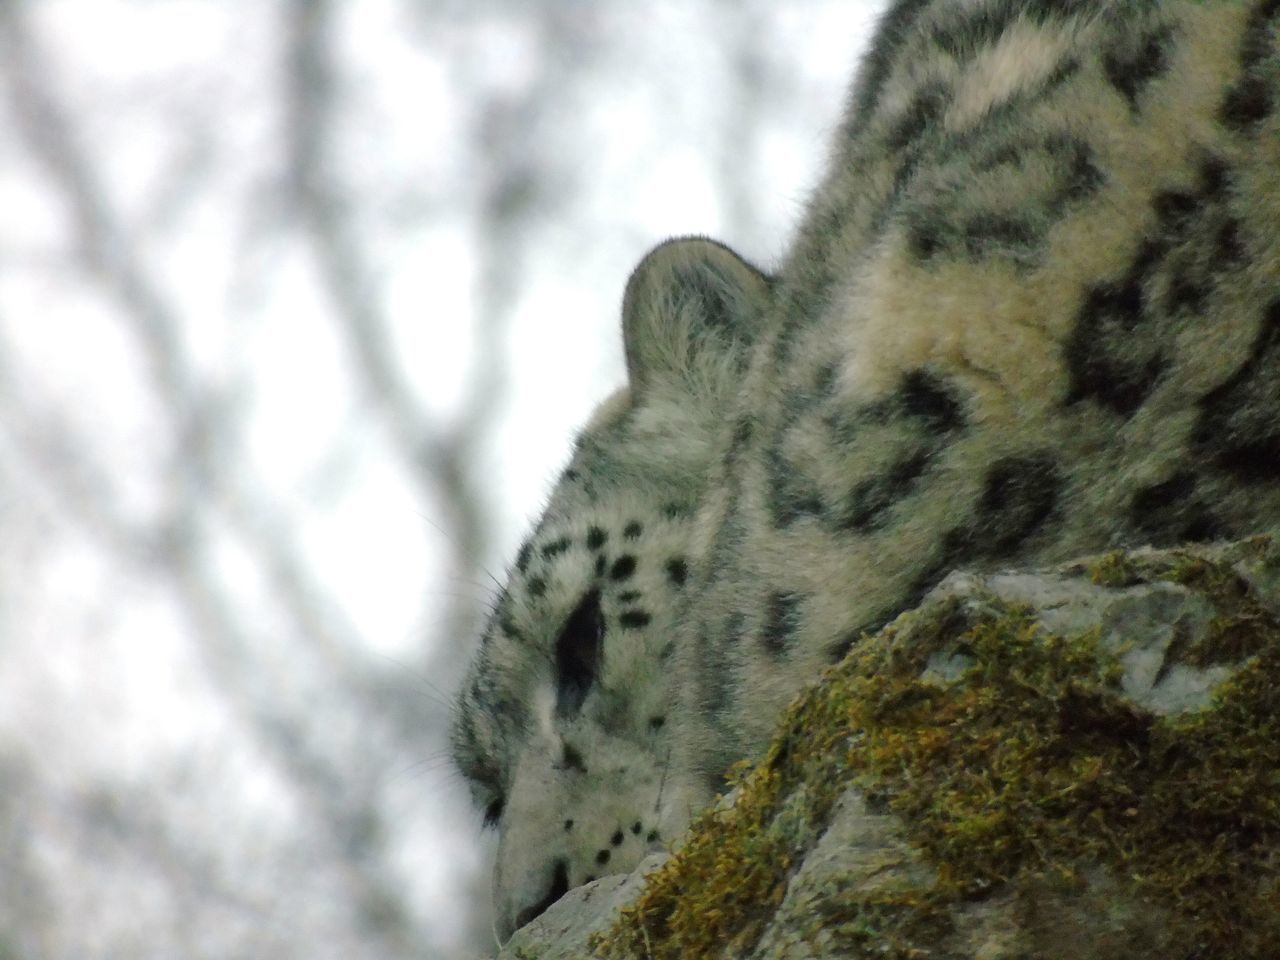 Snow Leopard resting on the rocks Uk Eye Em Scotland Scotland Kincraig Wildlife Park Big Cats Cats Of EyeEm Big Cat Cat Fur Wildlife Photography Beautiful Animals  Snow Leopard Snow Leopards >  One Animal Animals In The Wild Animal Wildlife Leopard Nature Close-up Mammal Beauty In Nature Animals In The Wild Animal Themes Backgrounds